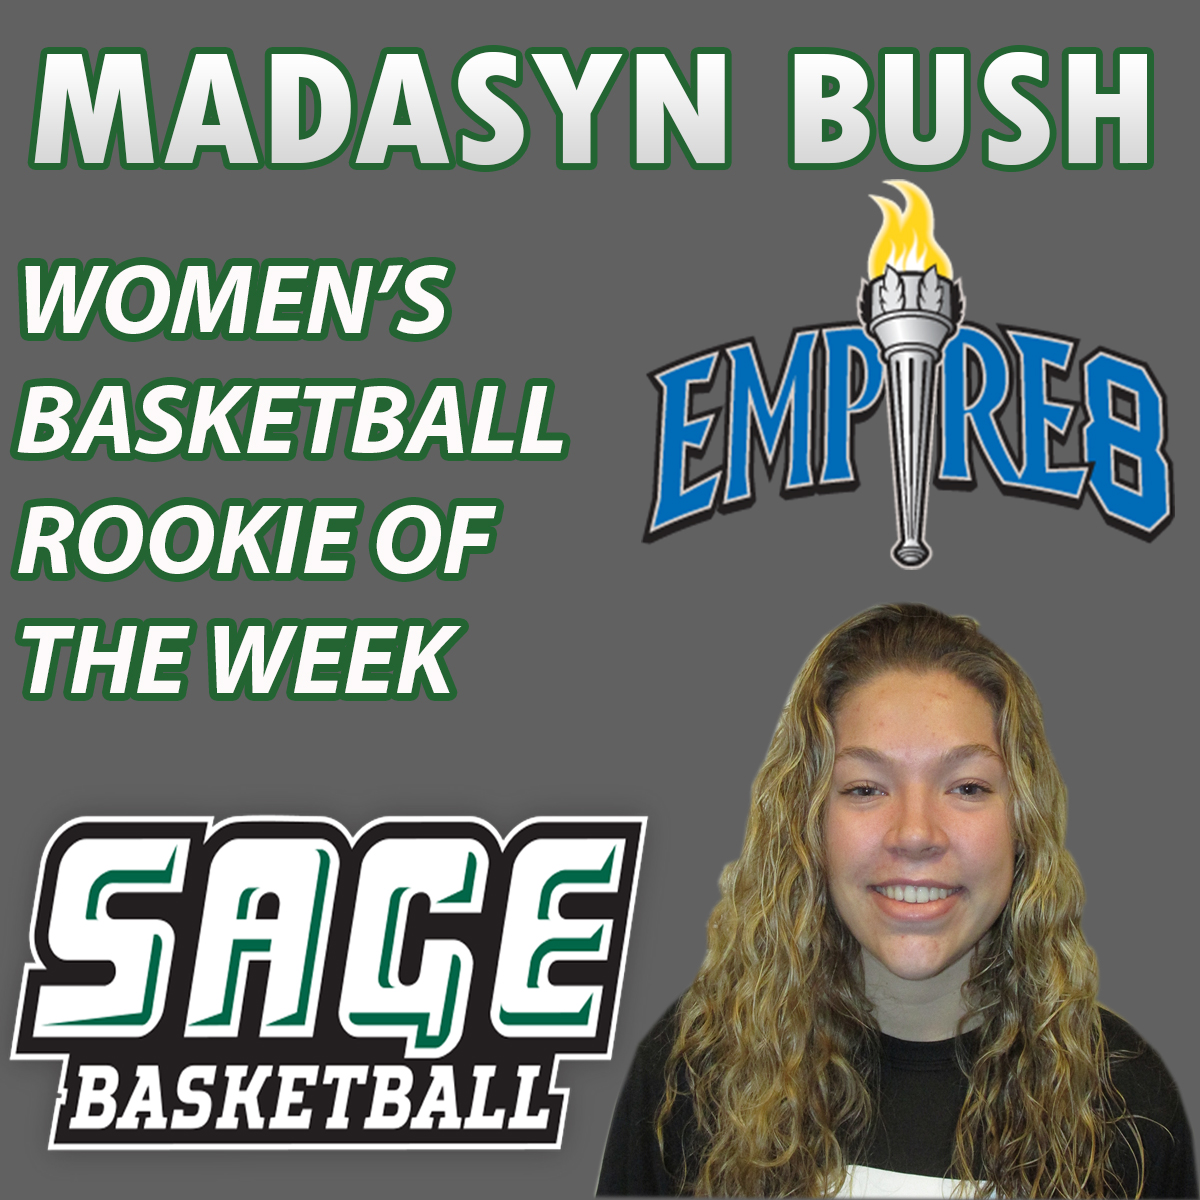 Sage's Madasyn Bush Earns Empire 8 Rookie of the Week status